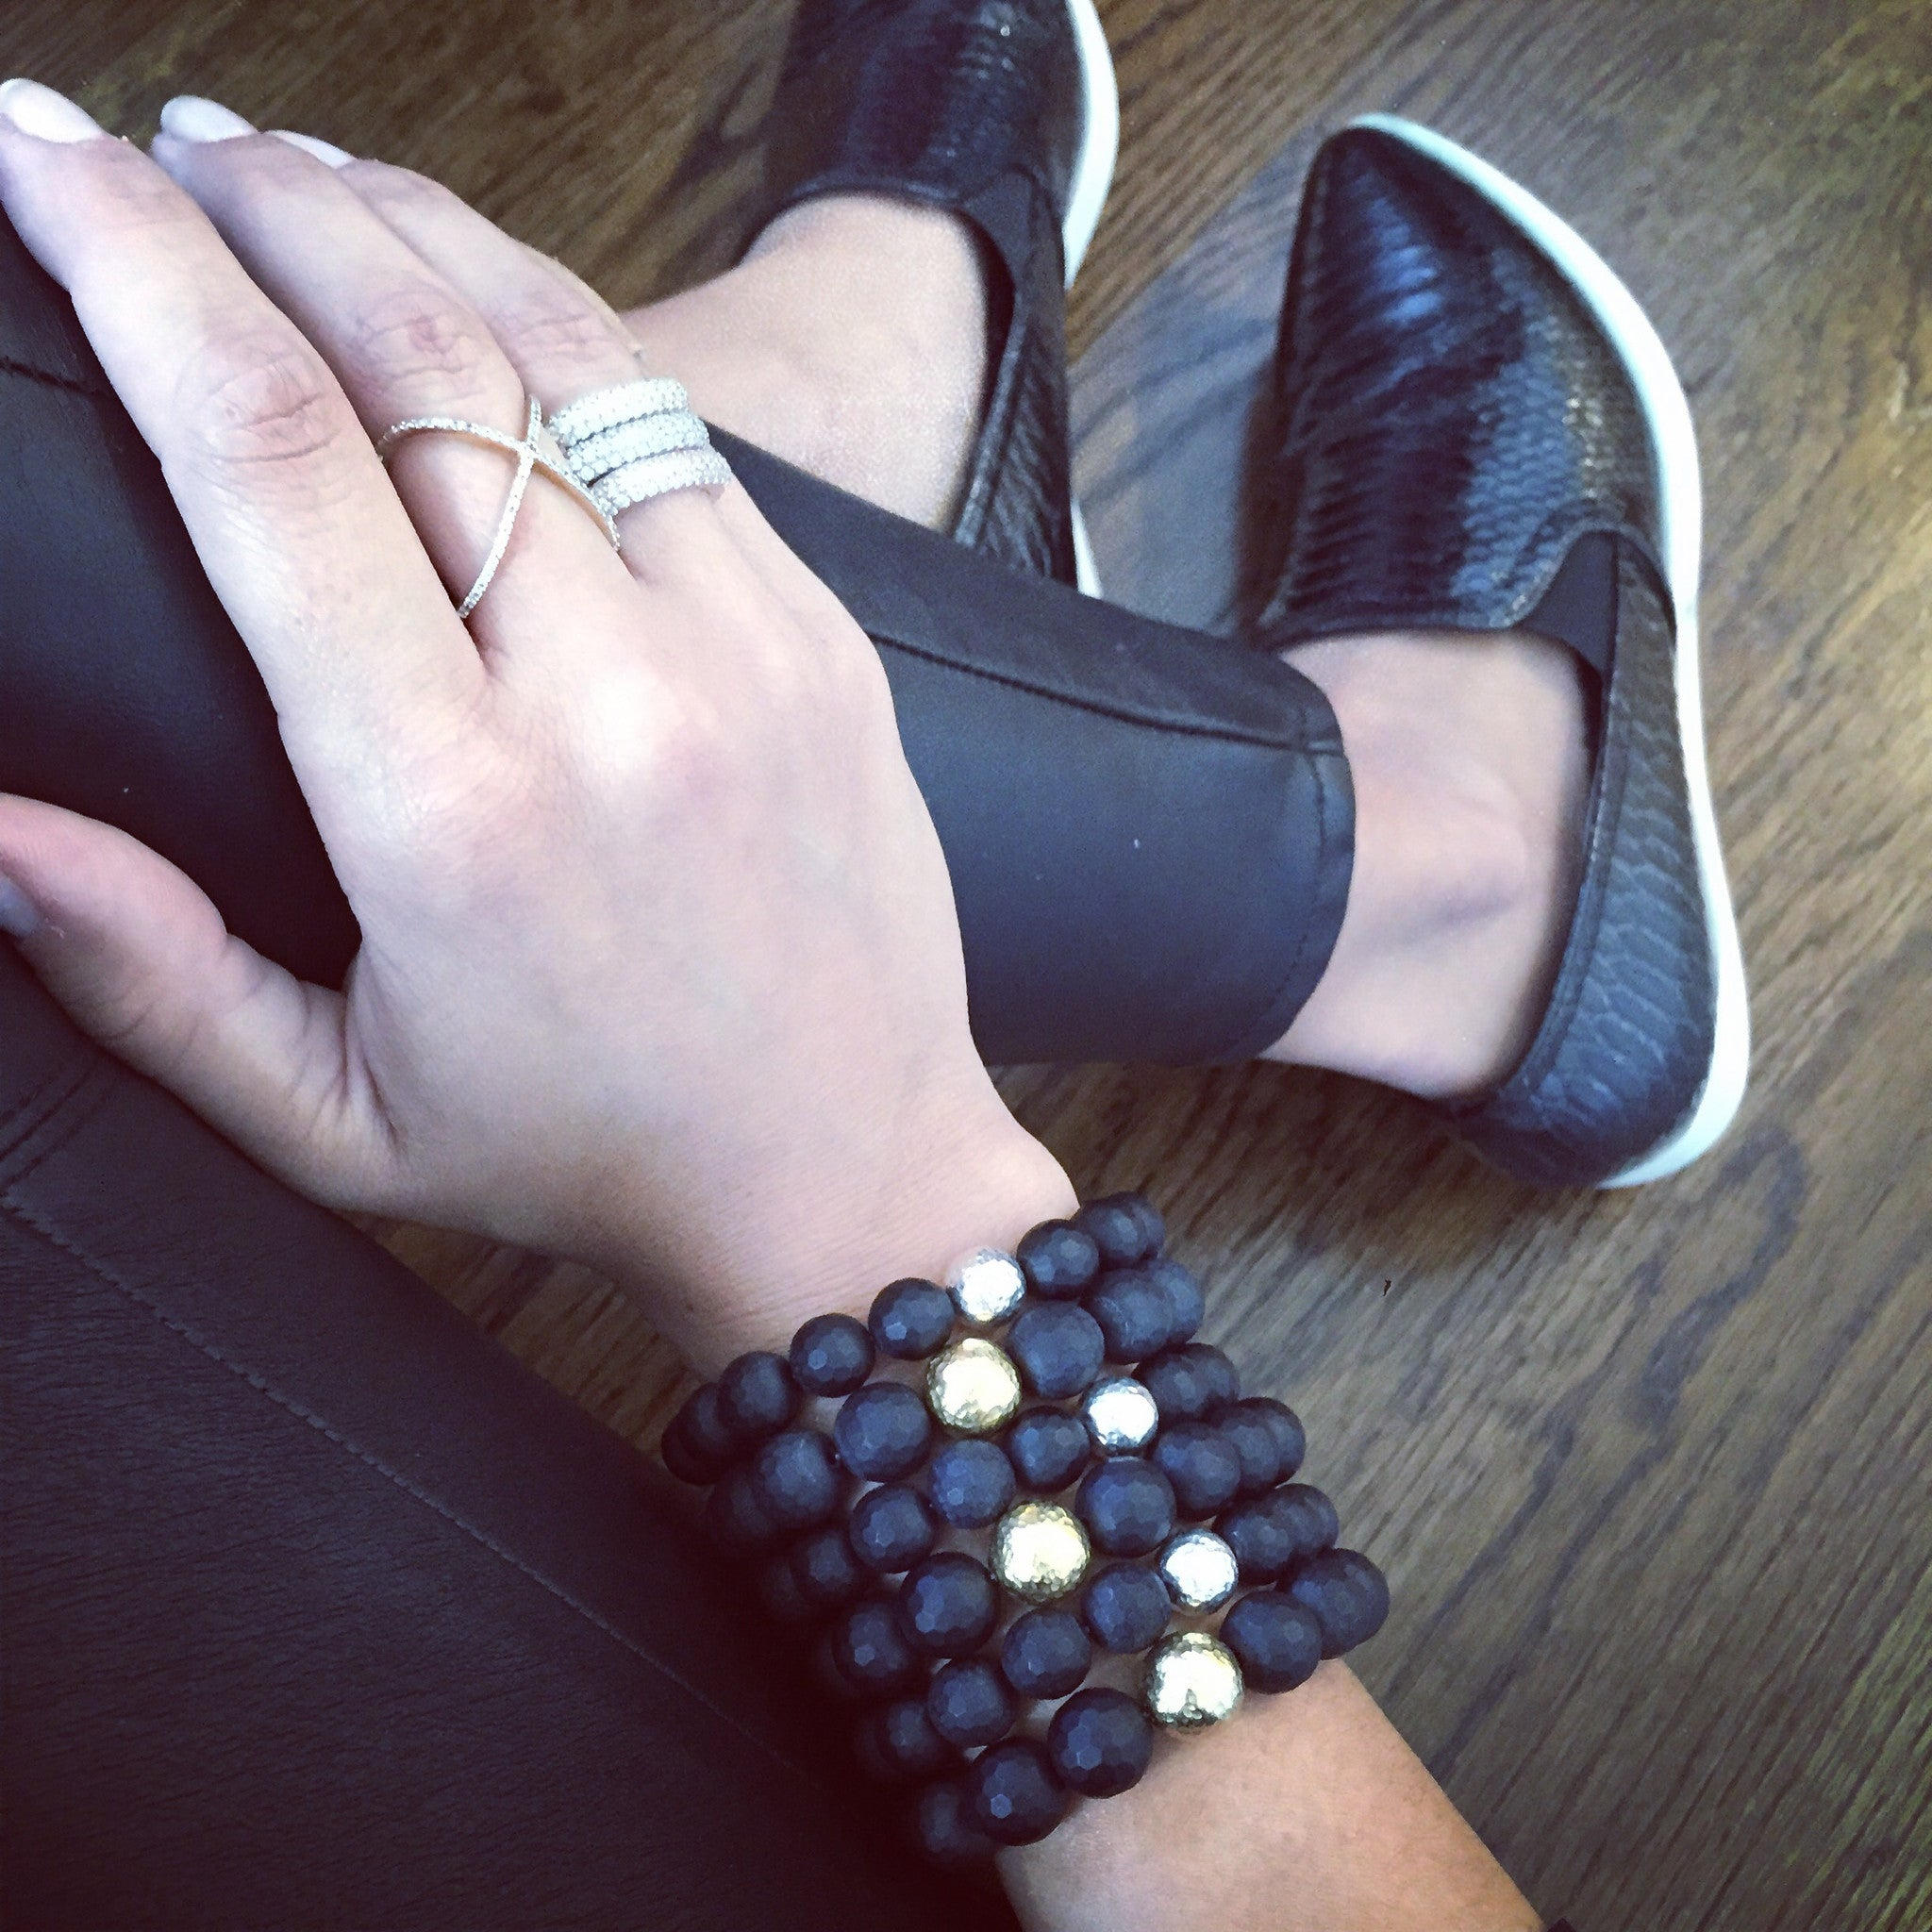 Uptown Chic Arm Party - Oriana Lamarca LLC